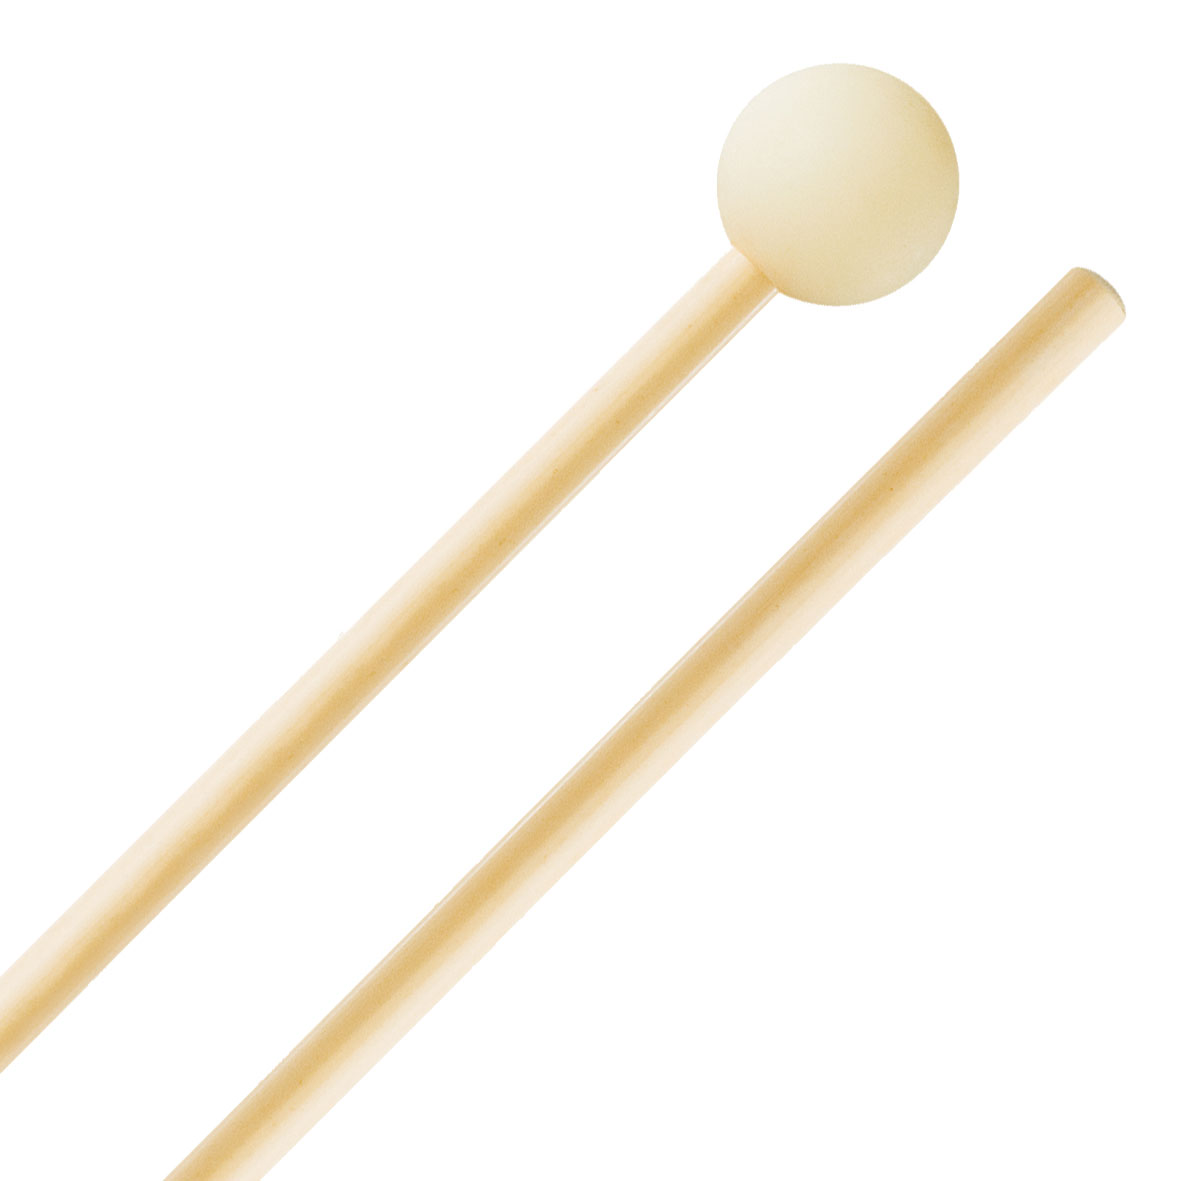 Promark Performer Series Medium Nylon Xylophone Mallets